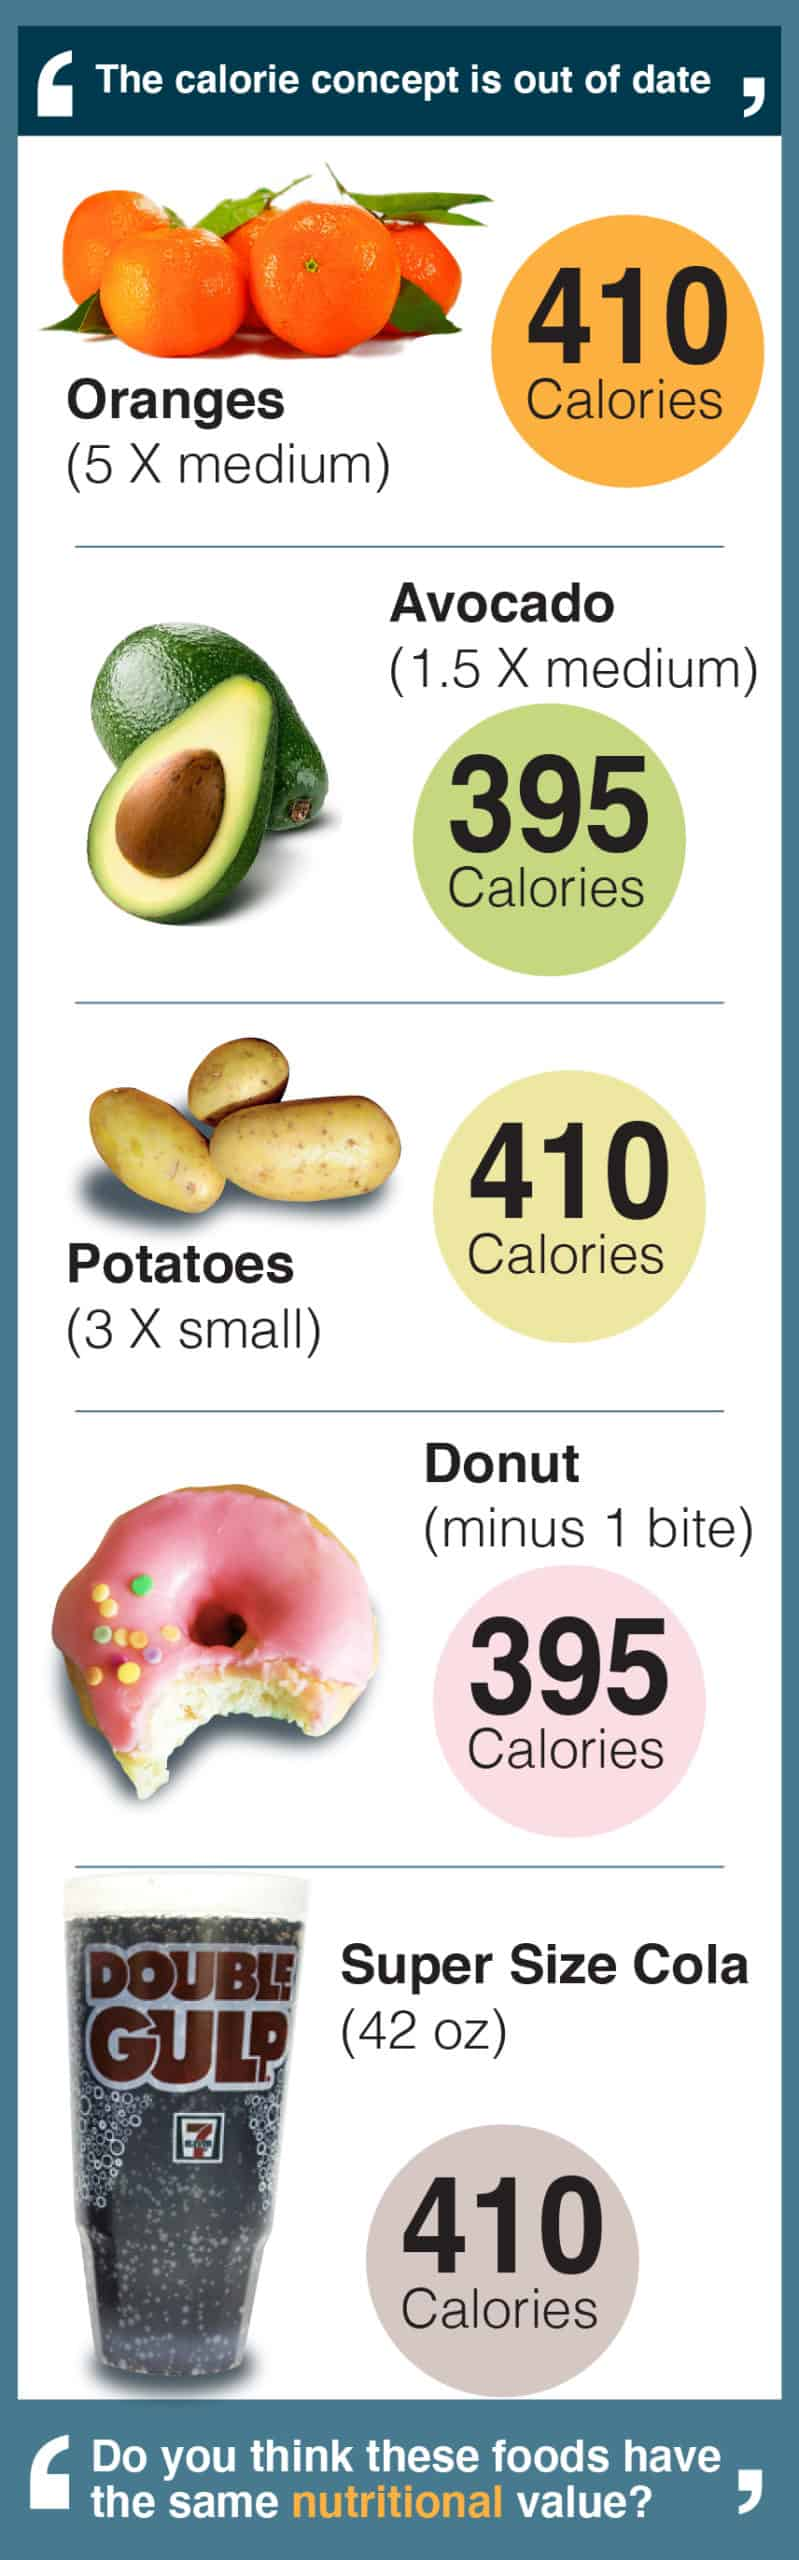 Food calorie breakdown